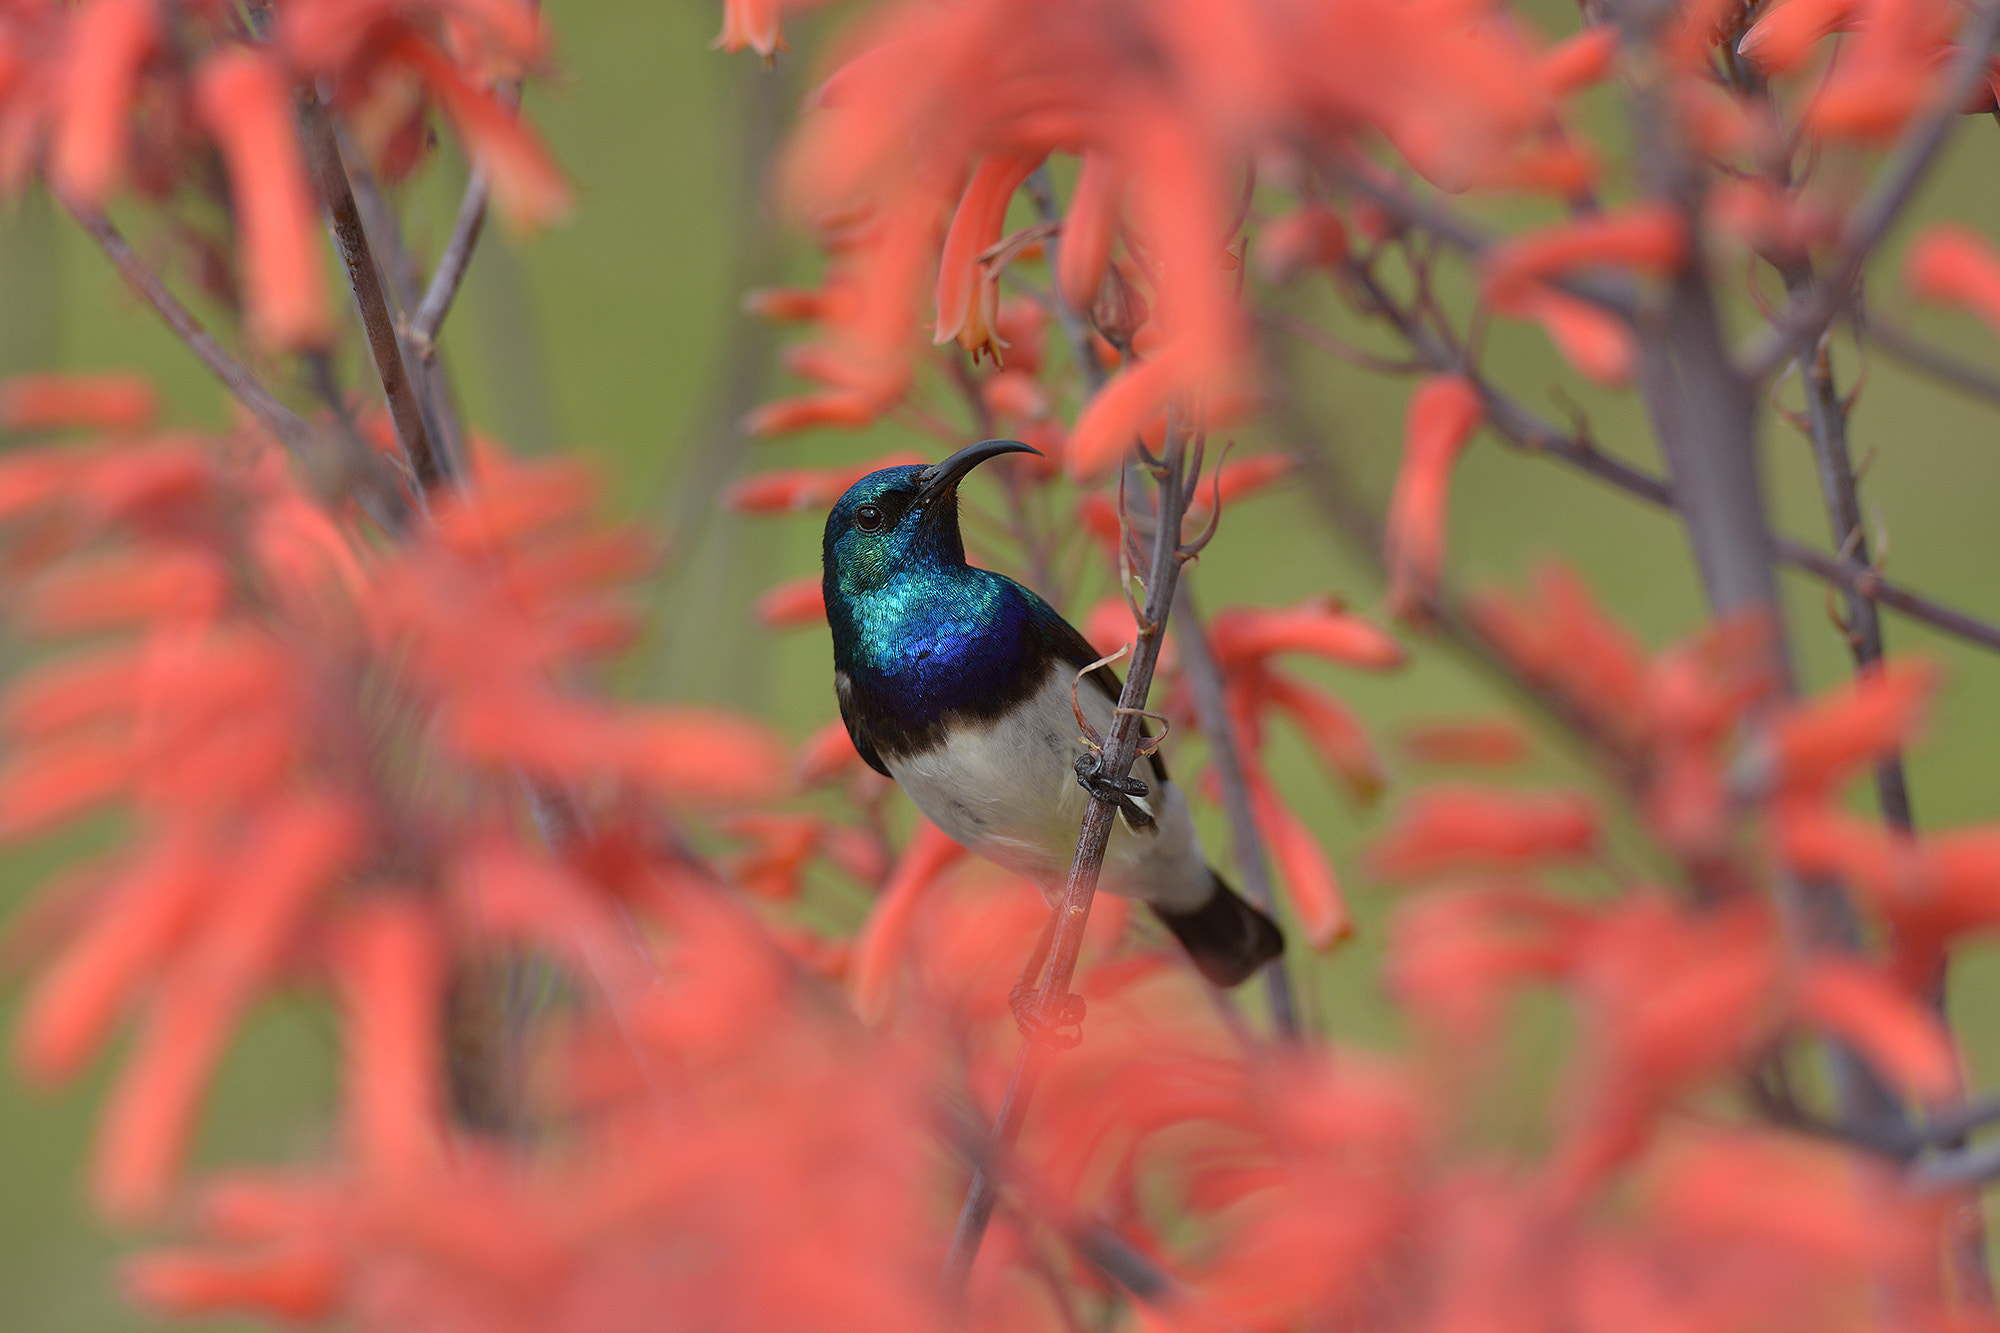 Photograph White-bellied Sunbird by Chris du Plessis on 500px